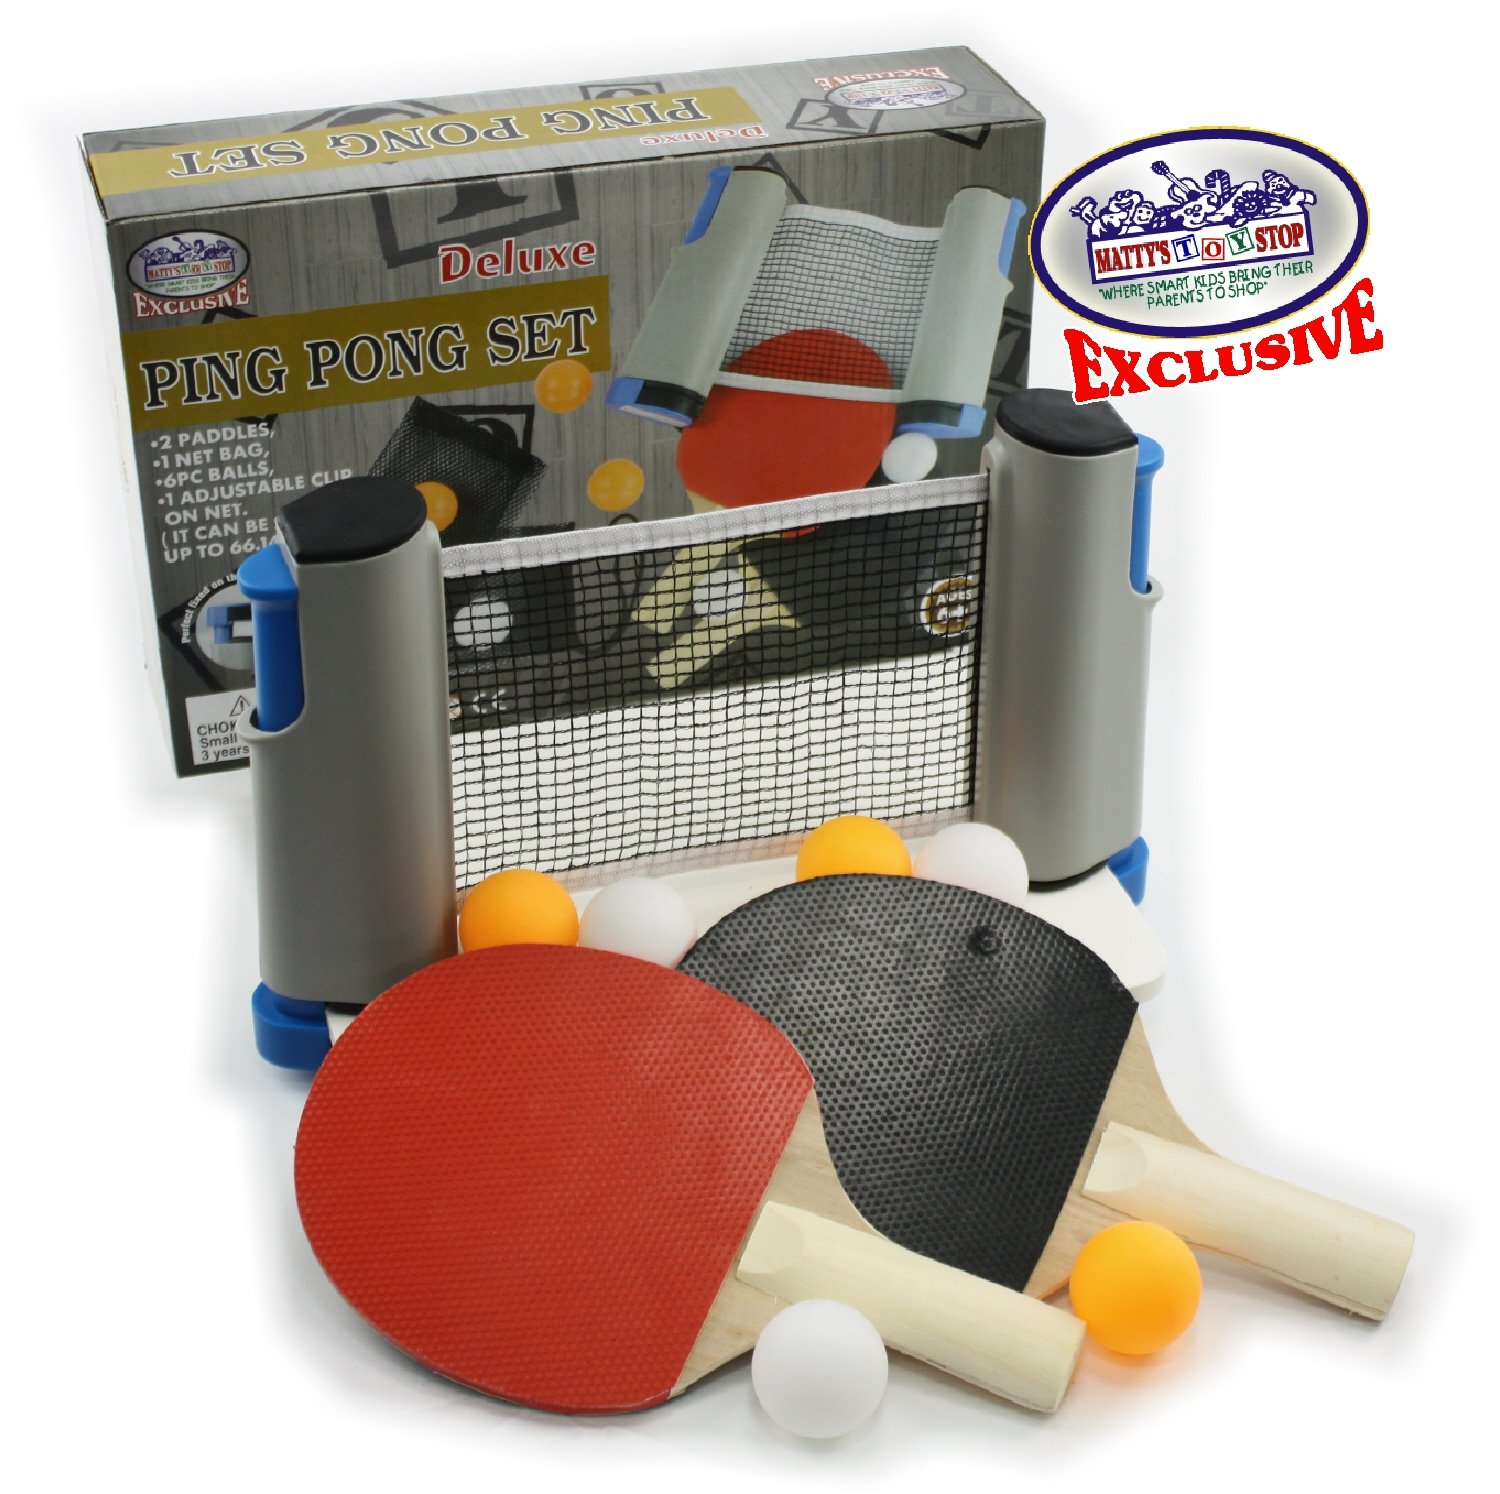 Matty's Toy Stop Deluxe Table Tennis (Ping Pong) To Go with Fully Adjustable Net, 2 Paddles, 6 Balls (3 Orange & 3 White) & Mesh Storage Bag by Matty's Toy Stop (Image #1)